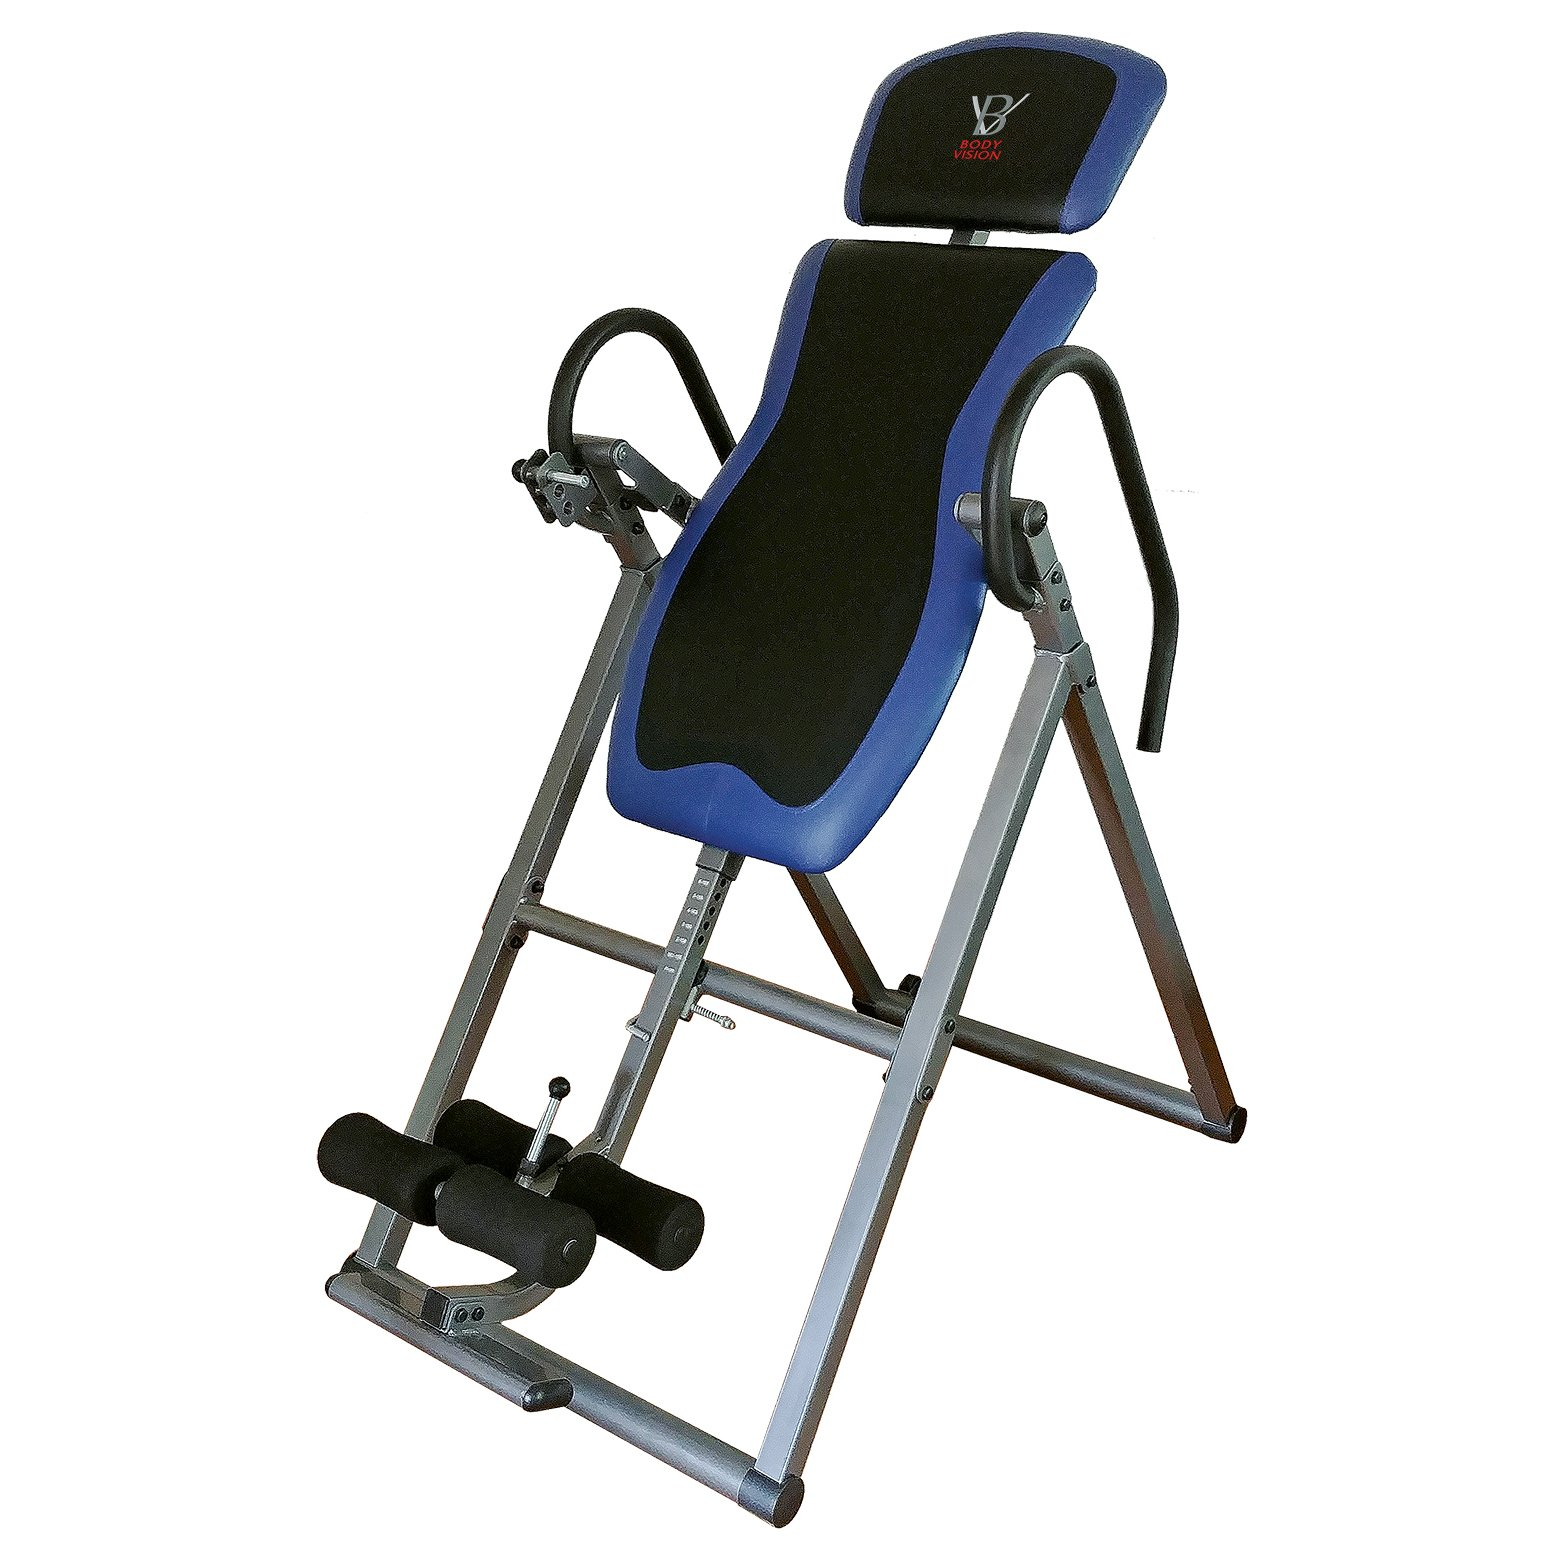 Body Vision IT9700 Deluxe Inversion Table with Adjustable Head Rest by Body Vision